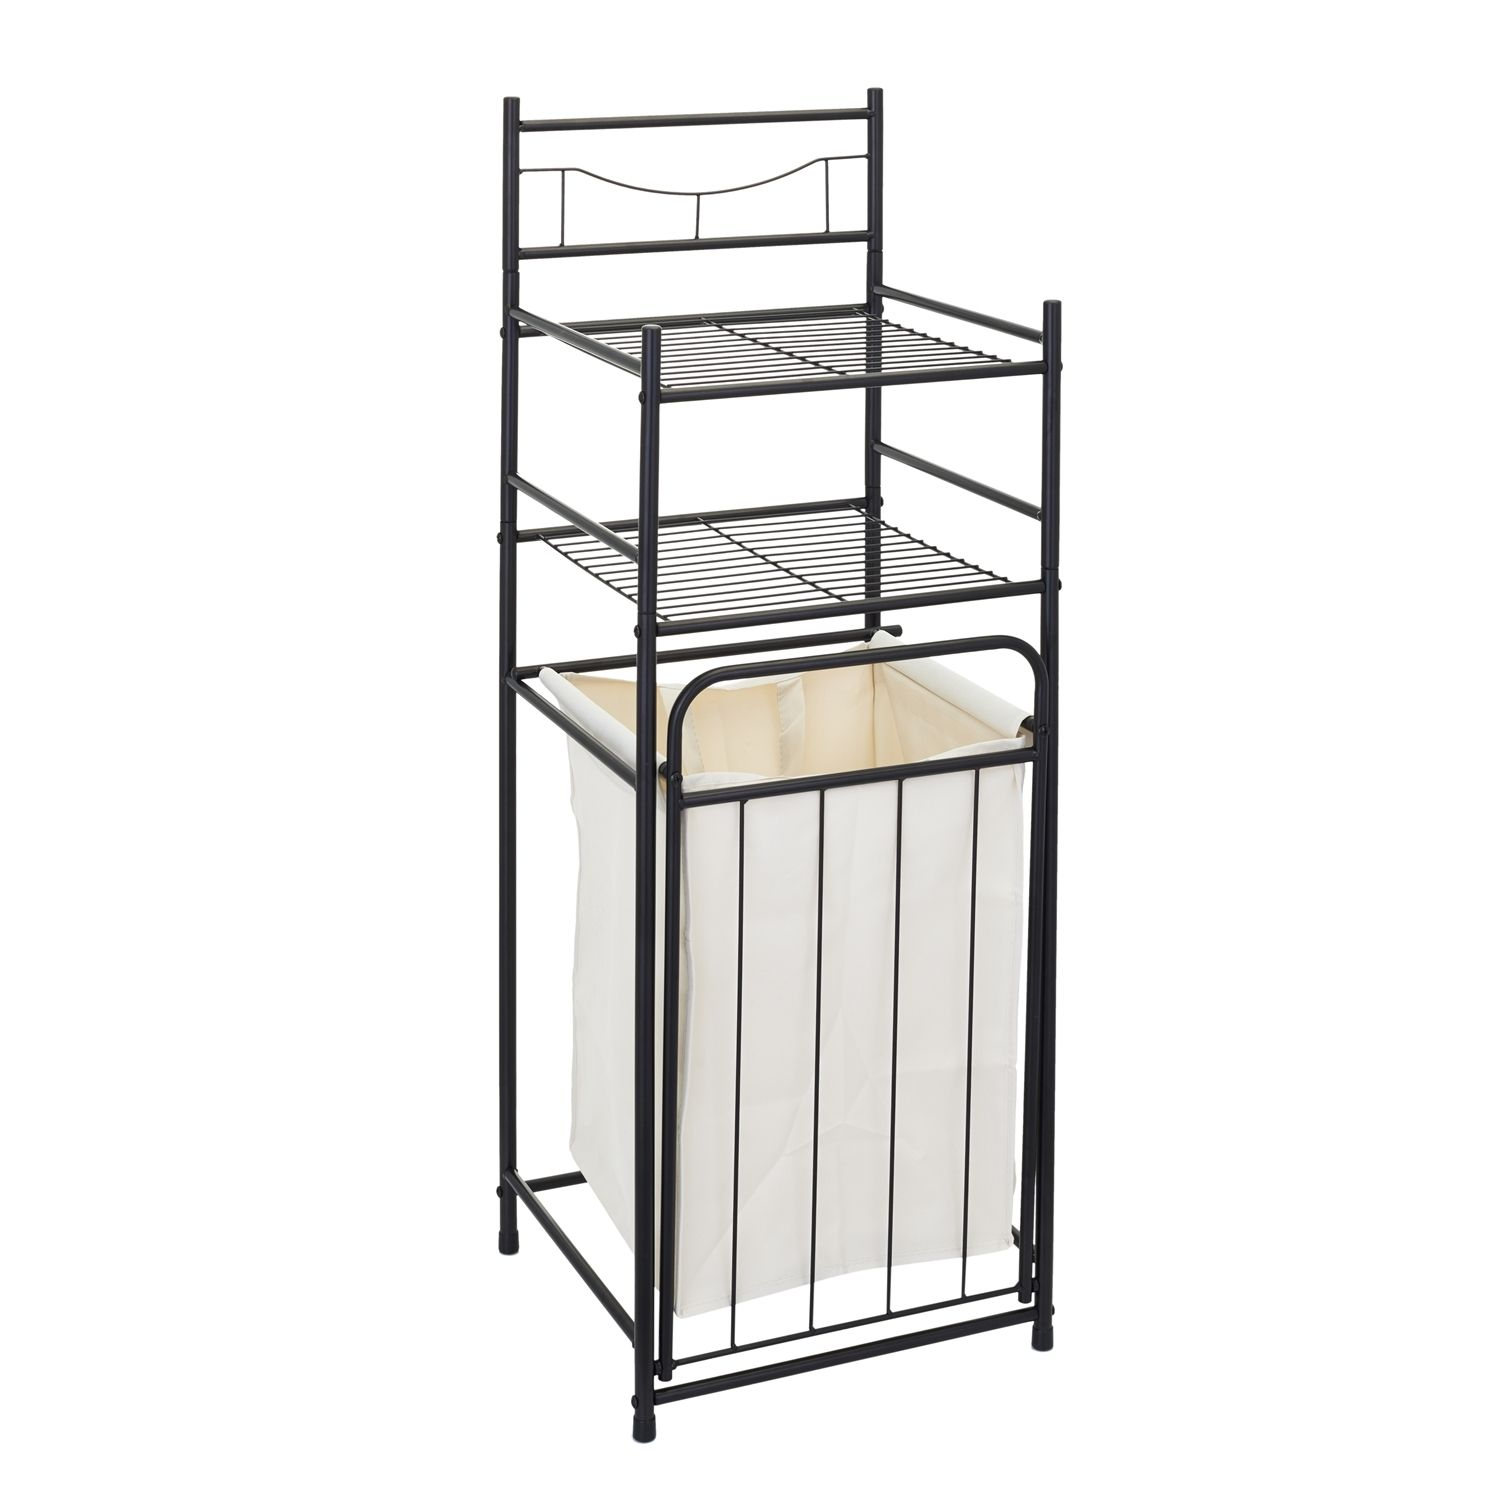 £19.99 The Range Laundry Storage Unit With Hamper ...